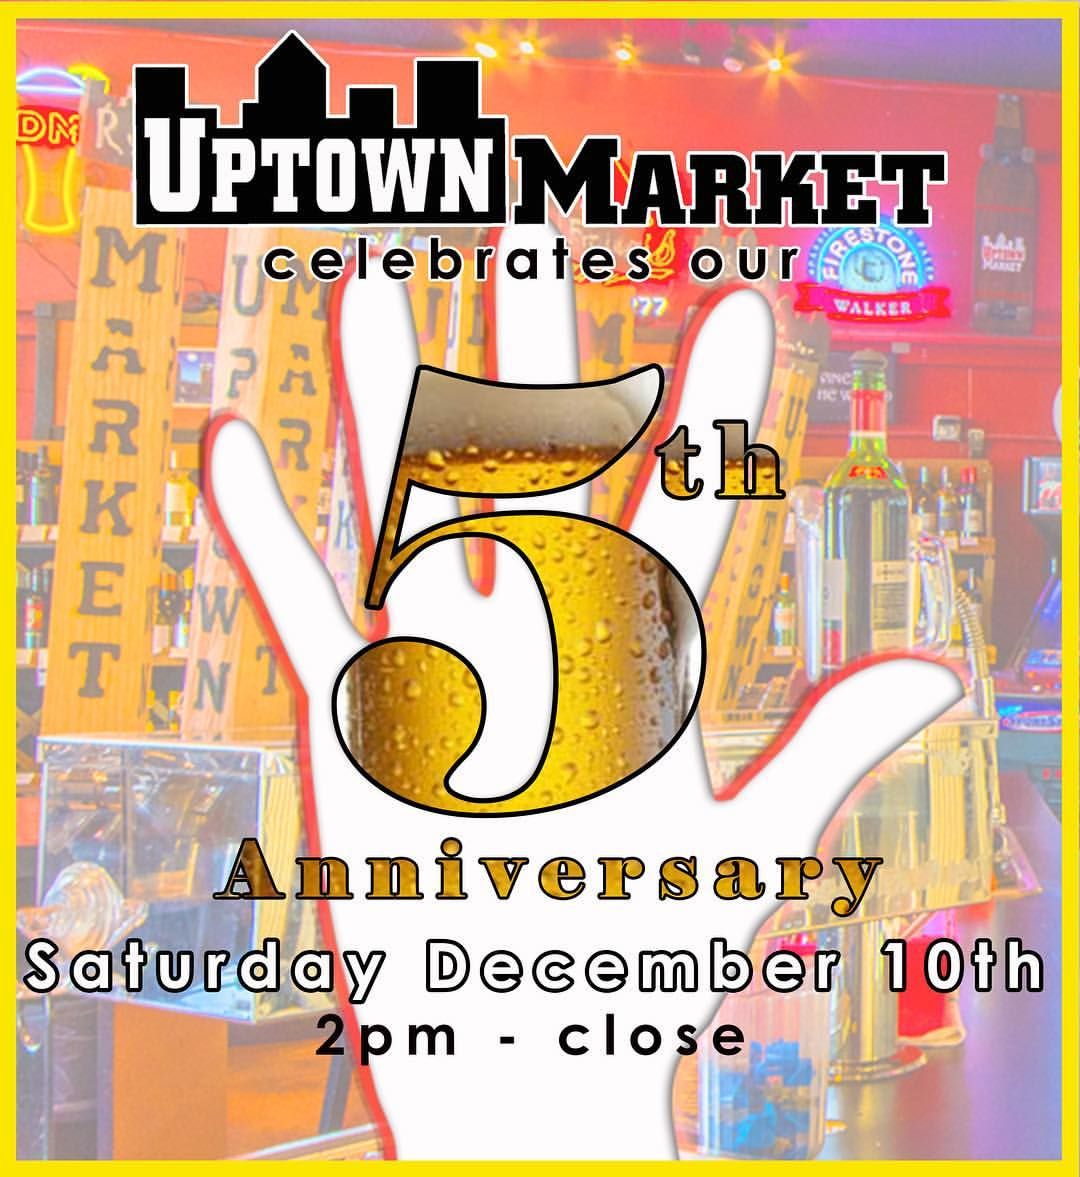 uptown-market-5th-anniversary-december-10-2016